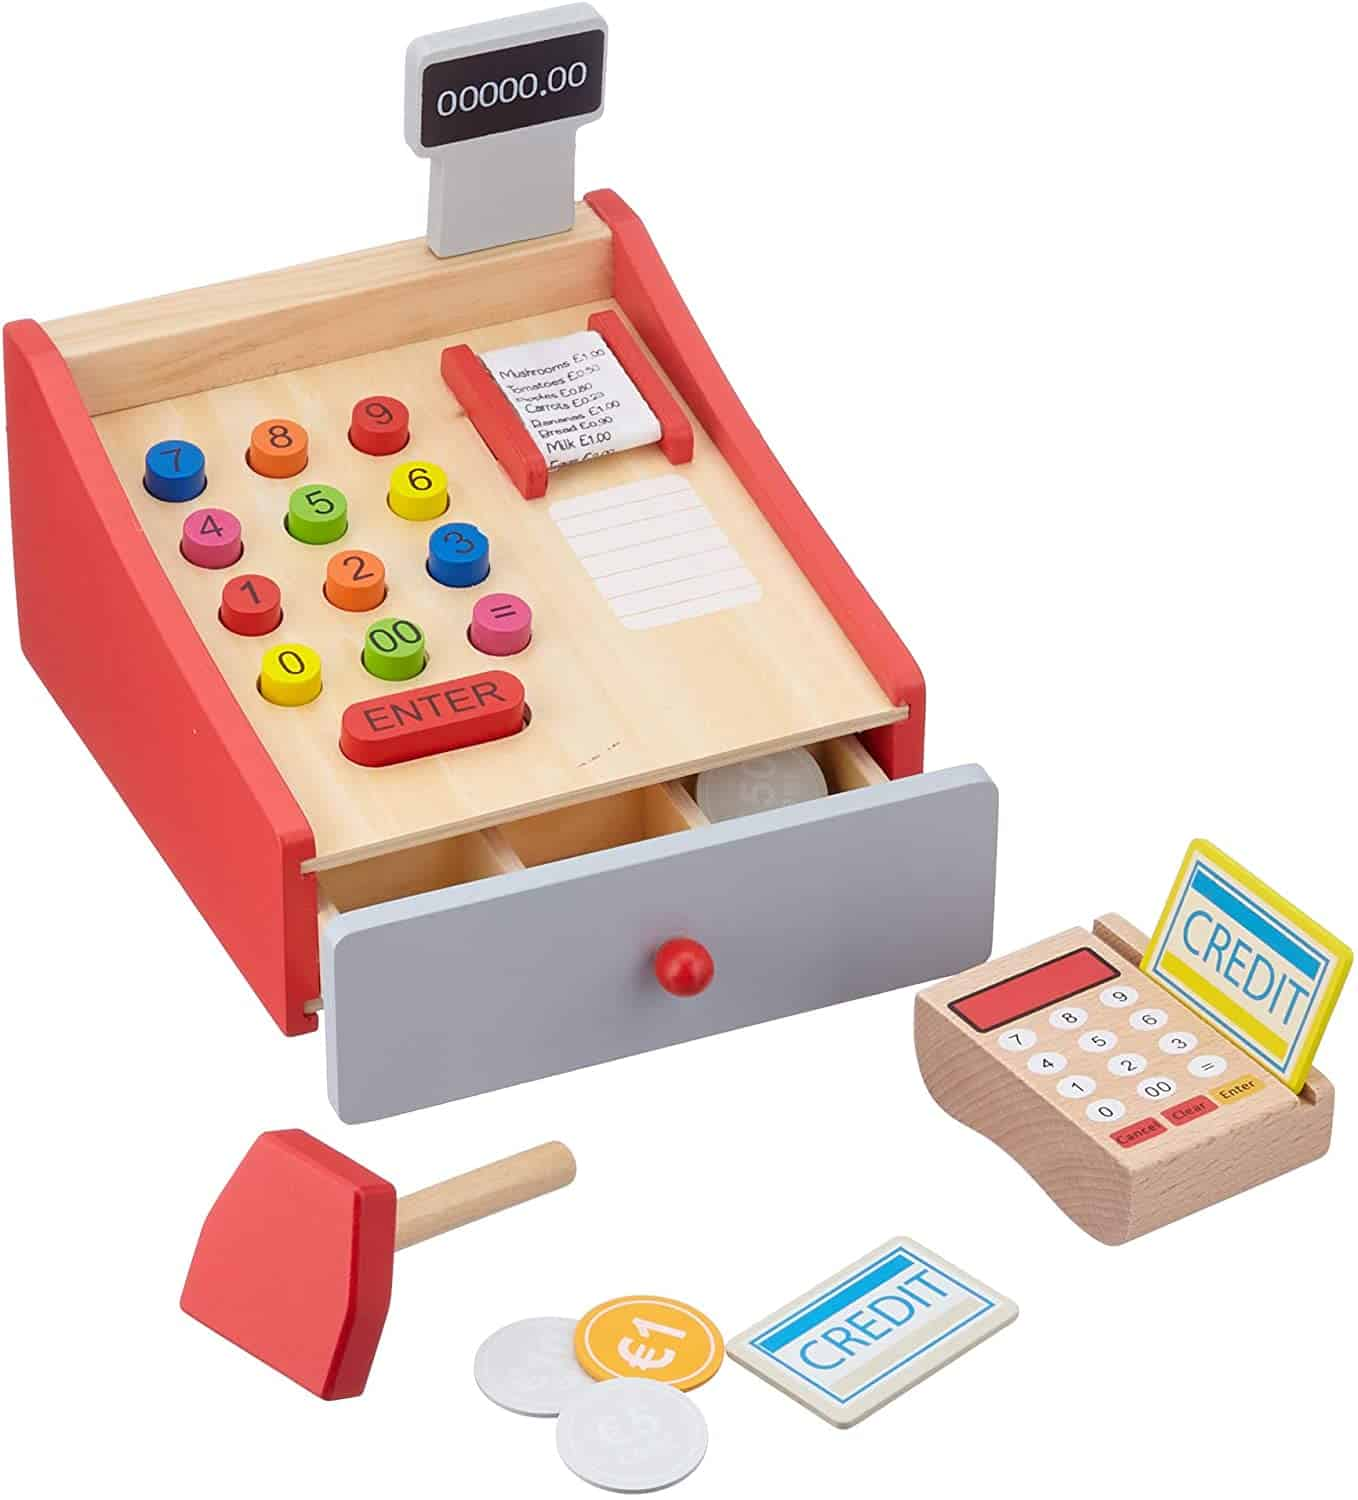 Overall nicest Jouéco toys: Wooden Cash Register with Scanner and Debit Card